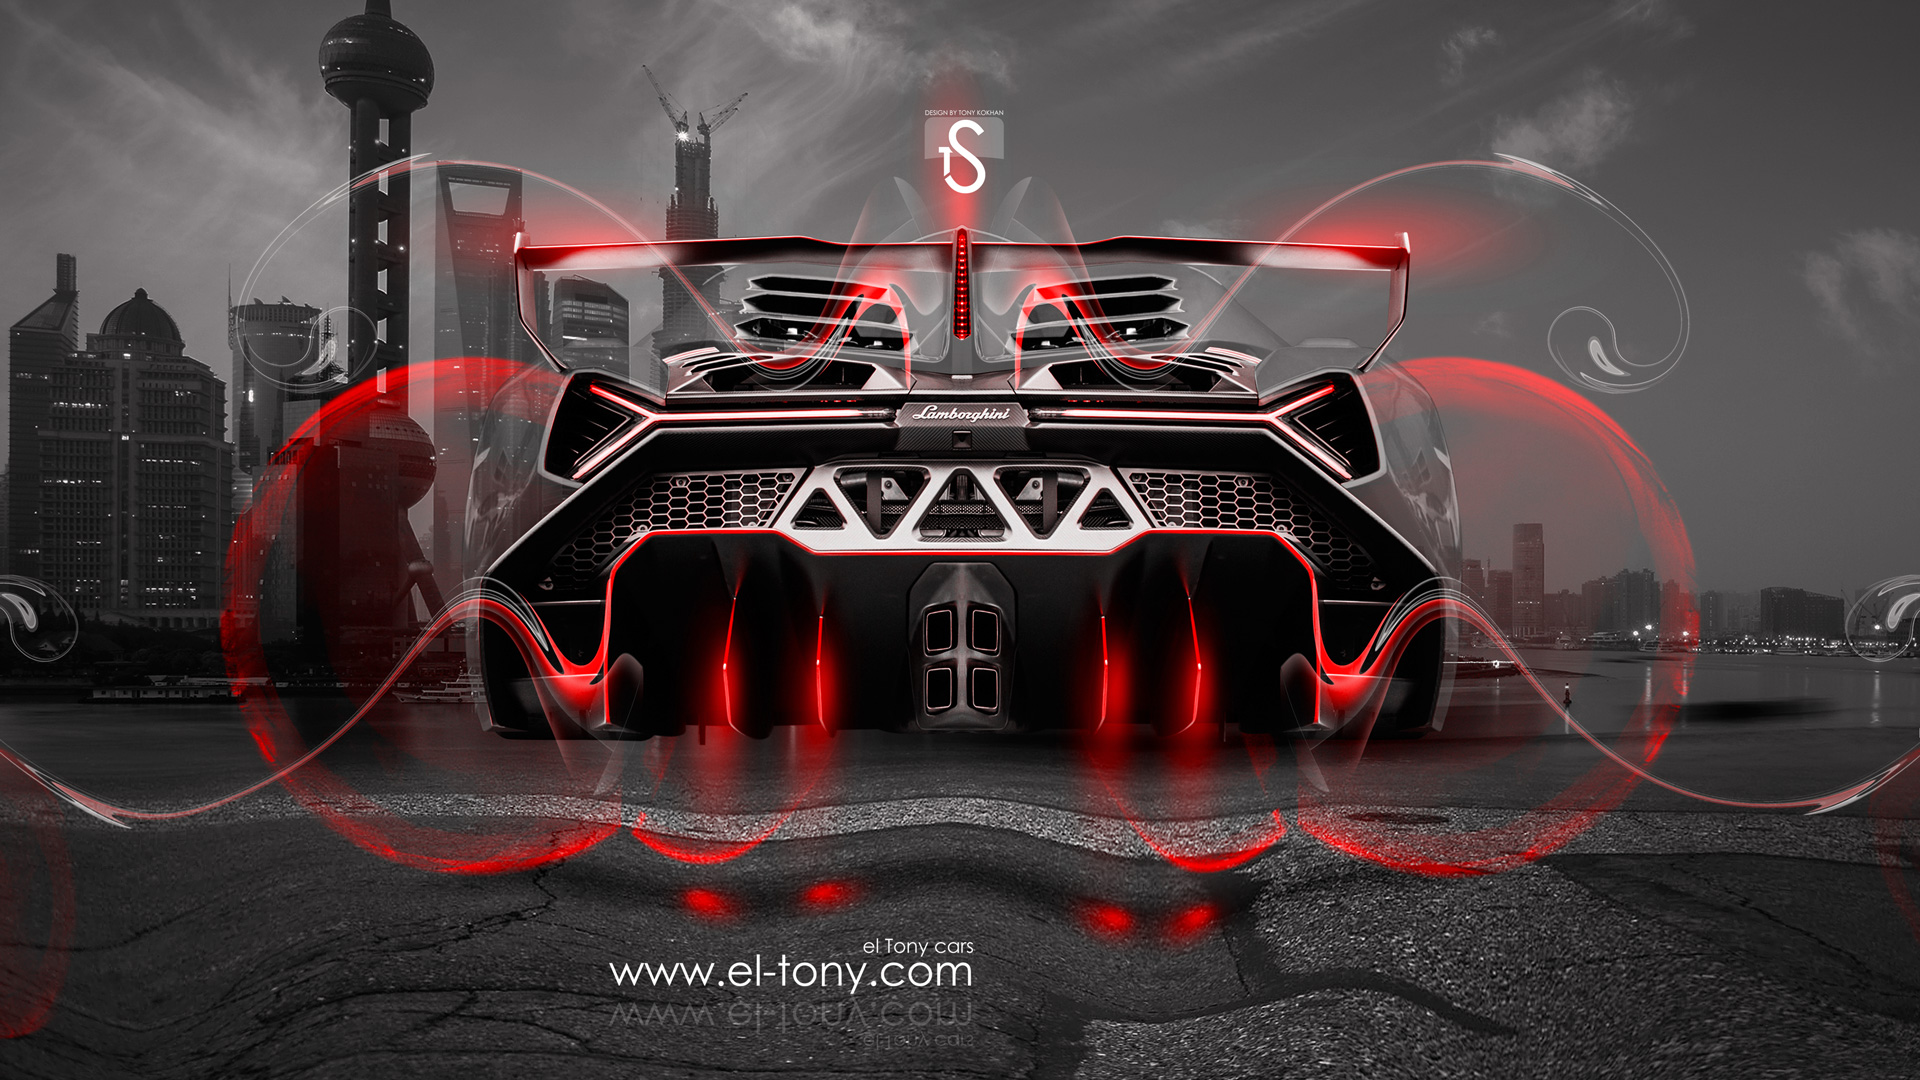 Attirant ... Lamborghini Veneno Fantasy Fly Crystal City Car 2014  ...